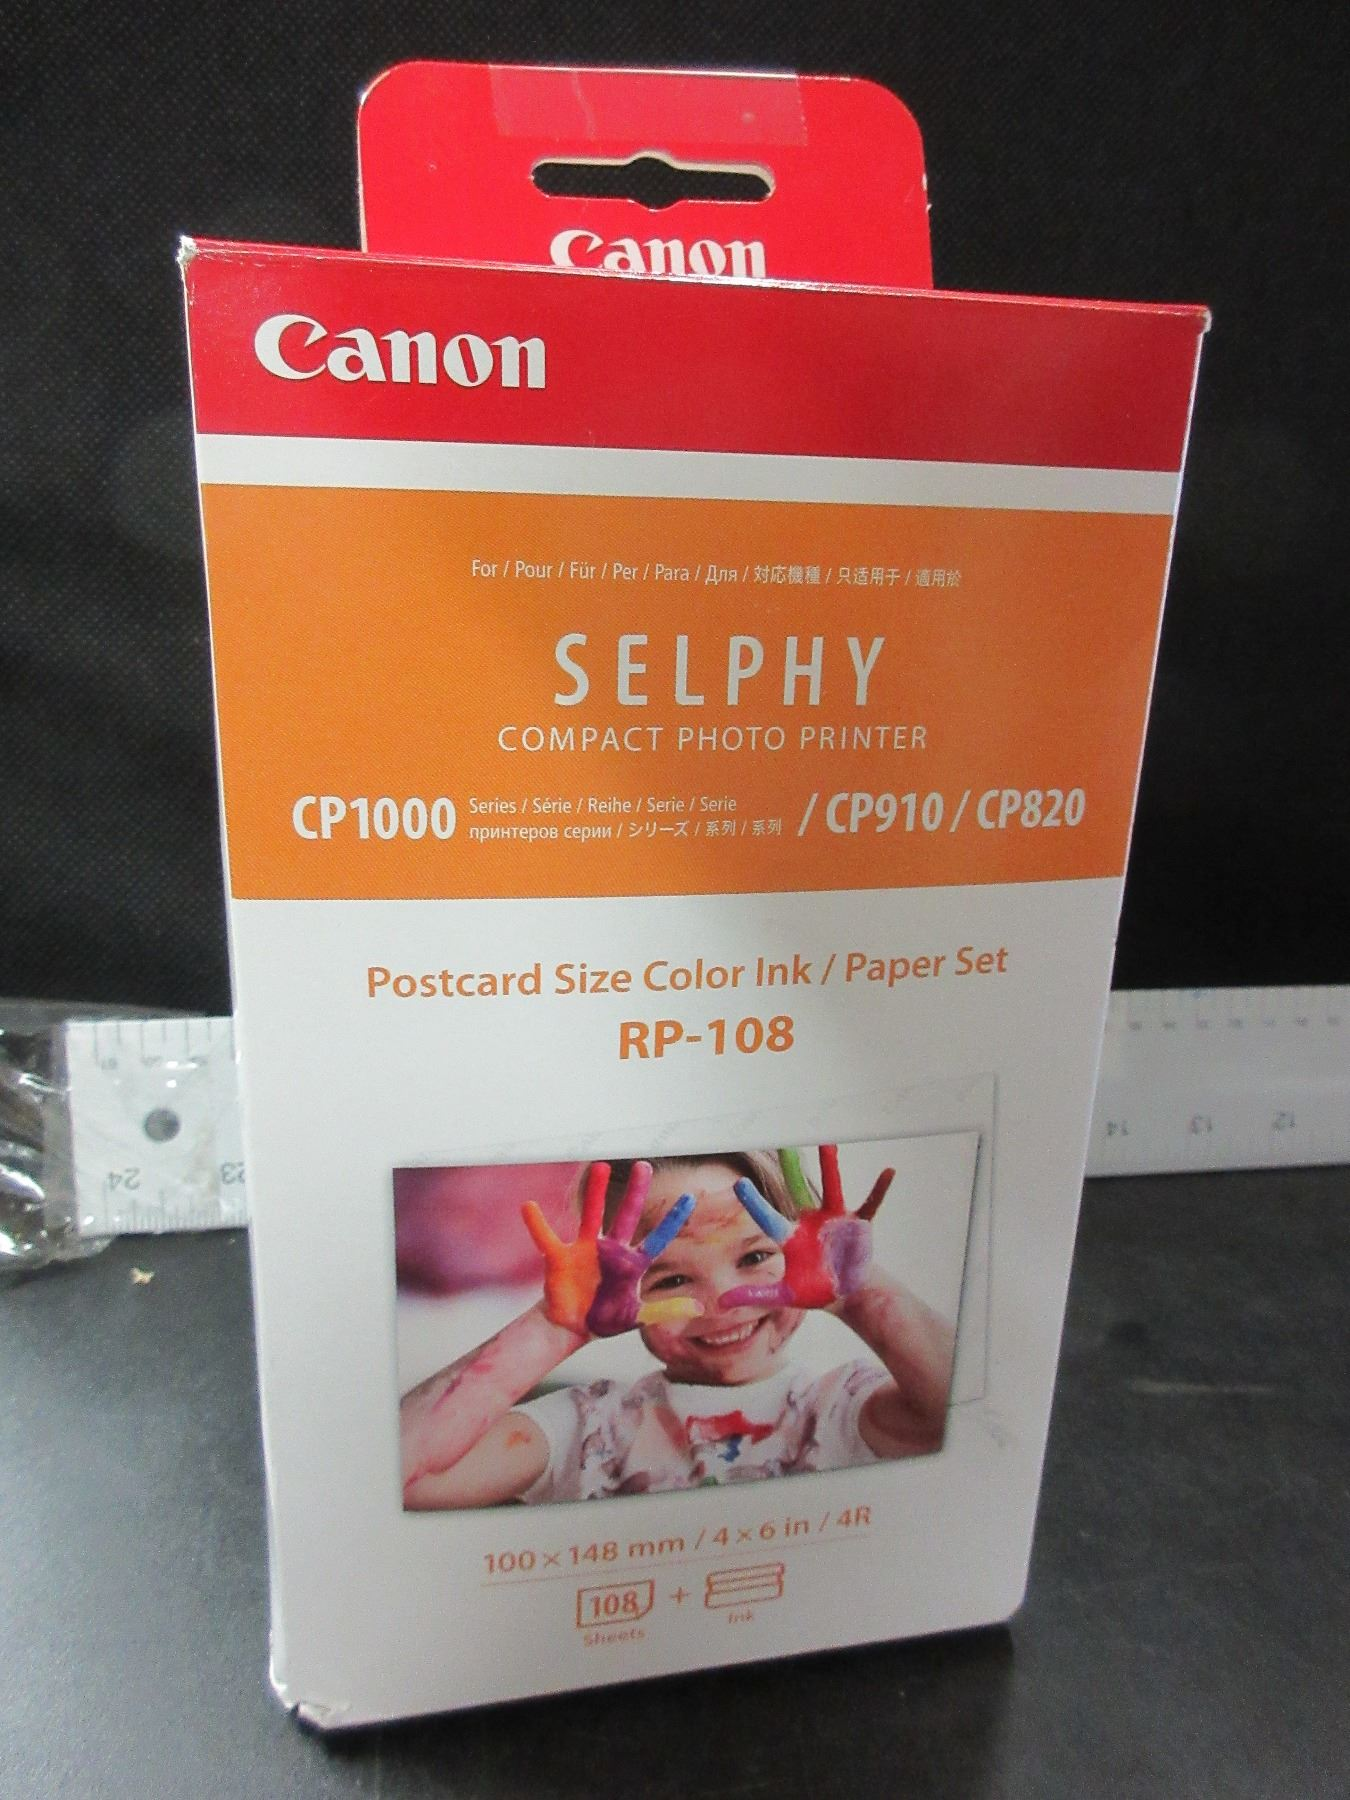 Selphy Compact Photo Printer / Postcard size color ink